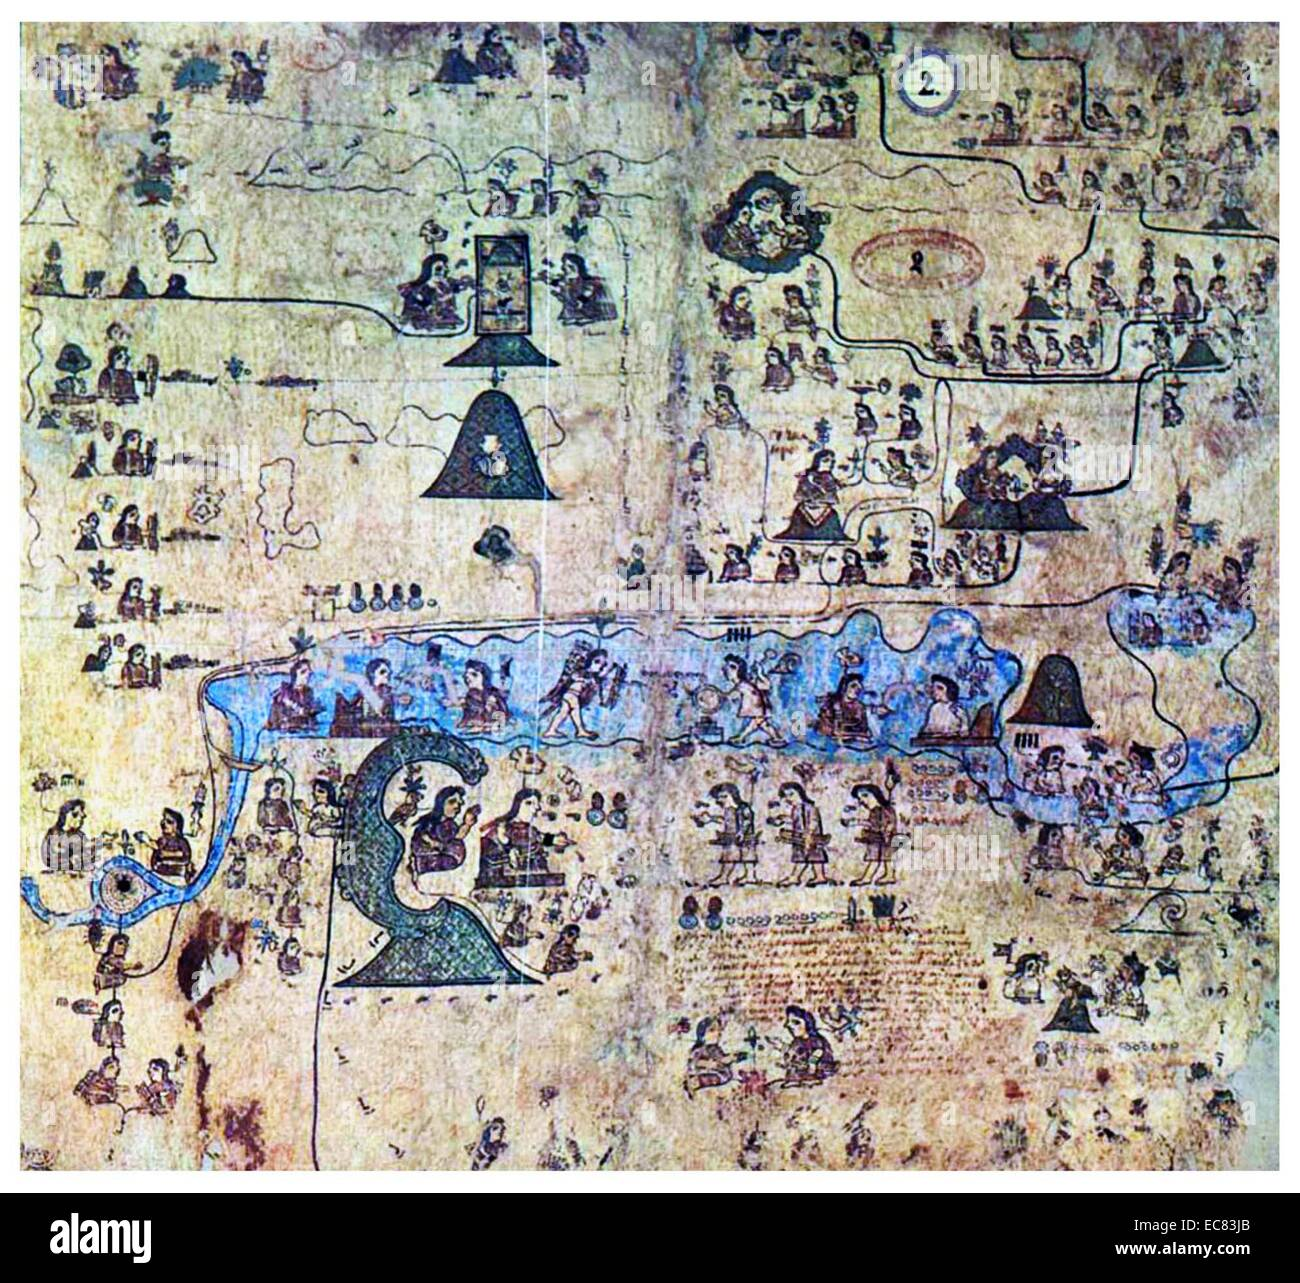 The Codex Xolotl is a post conquest cartographic Aztec codex, thought to have originated before 1542 - Stock Image